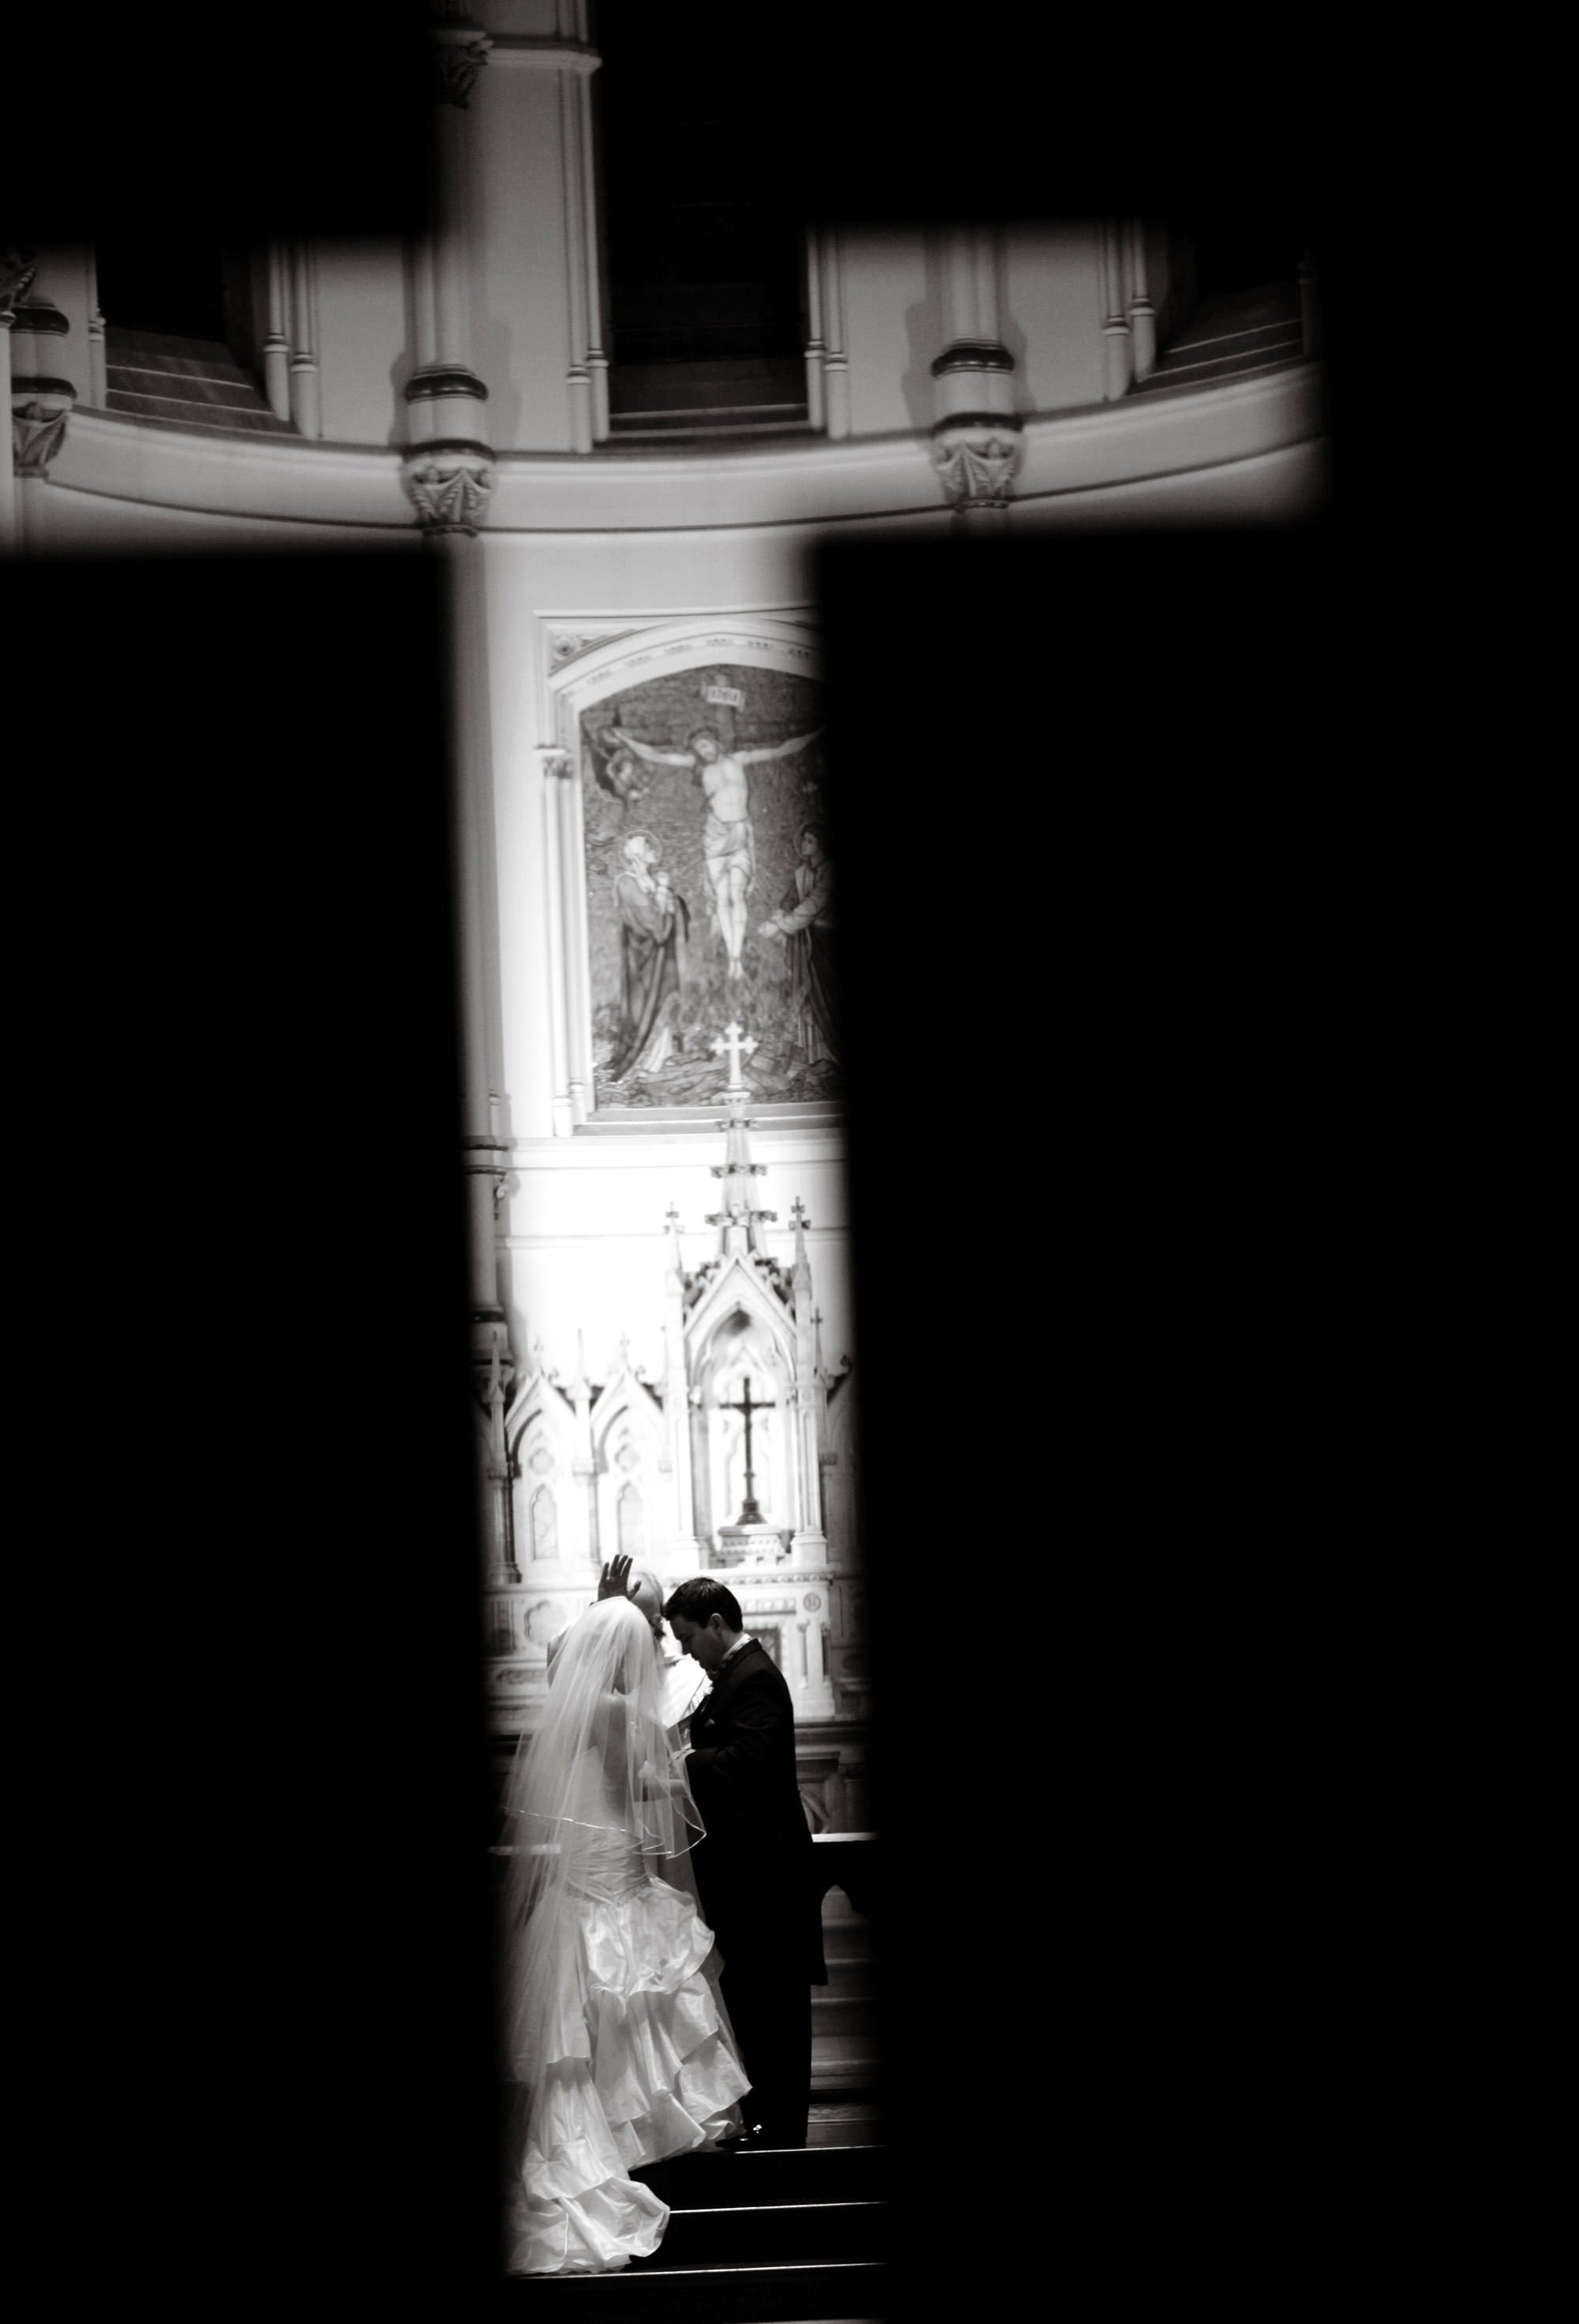 The wedding ceremony at Corpus Christi Church in Baltimore, MD.